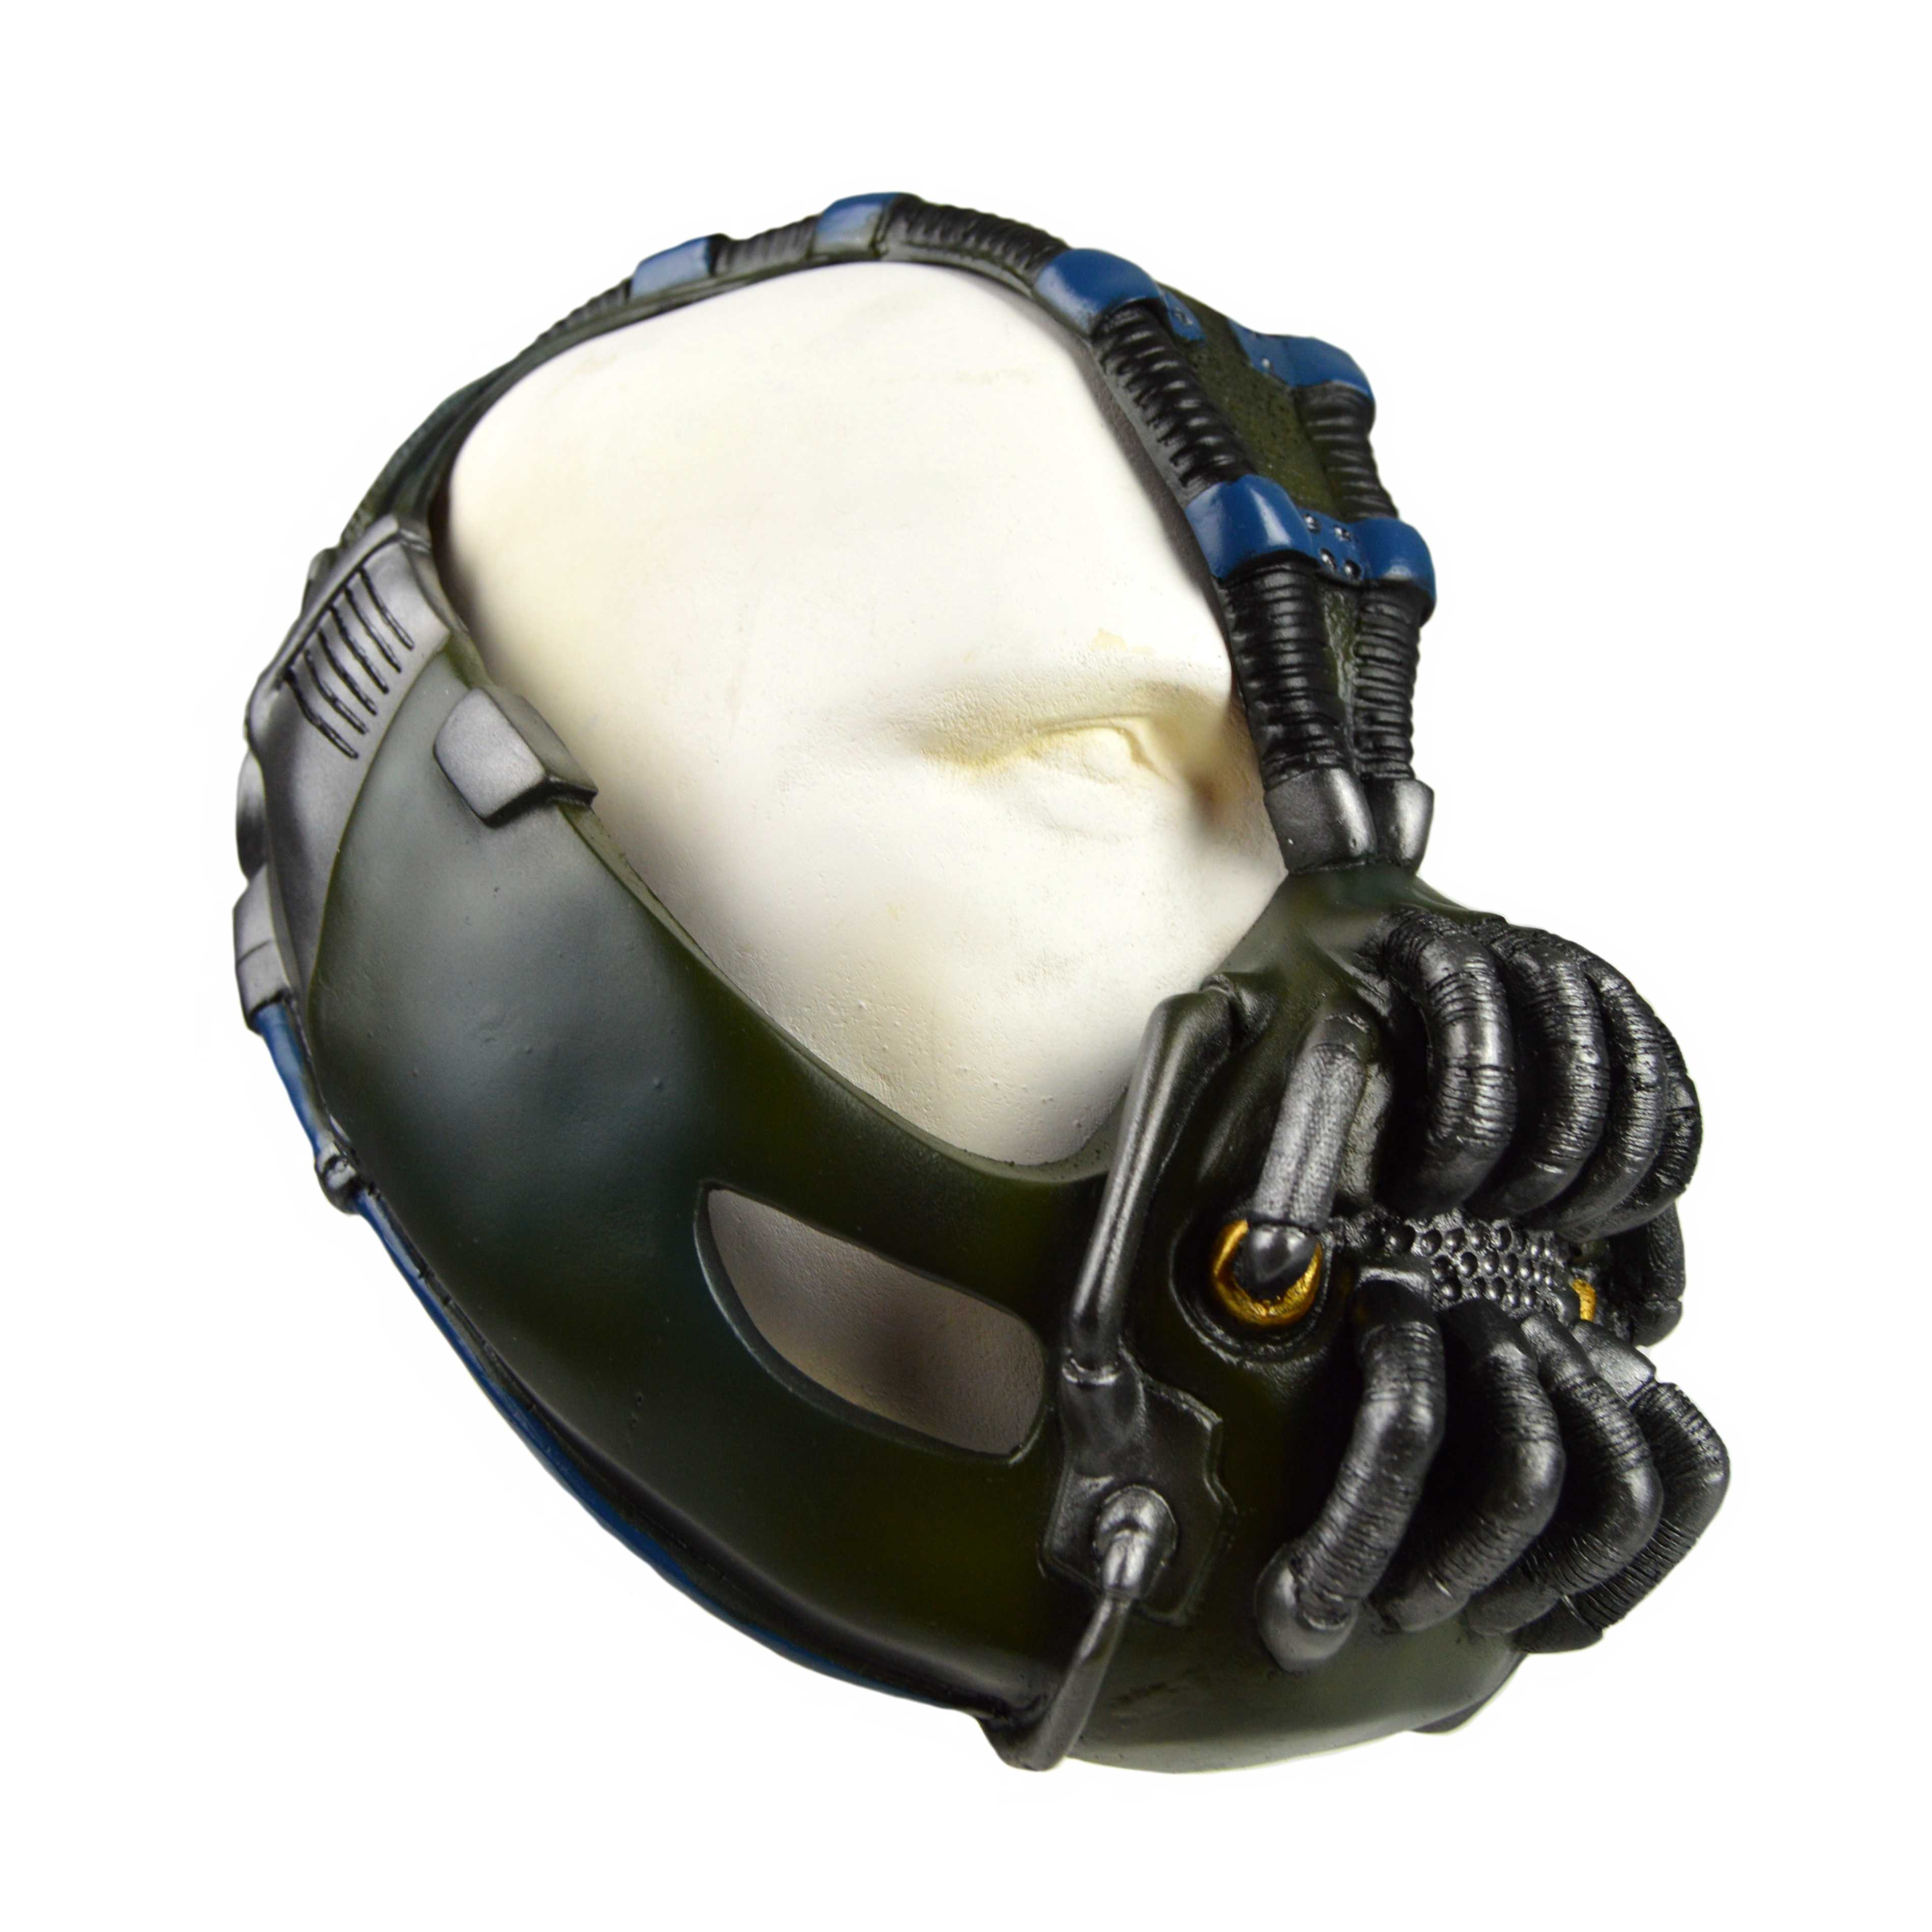 ... Bane Mask painted Tom Hardy Style - Thumbnail 3 ...  sc 1 st  Gotham City FX - Storenvy : bane costume accessories  - Germanpascual.Com